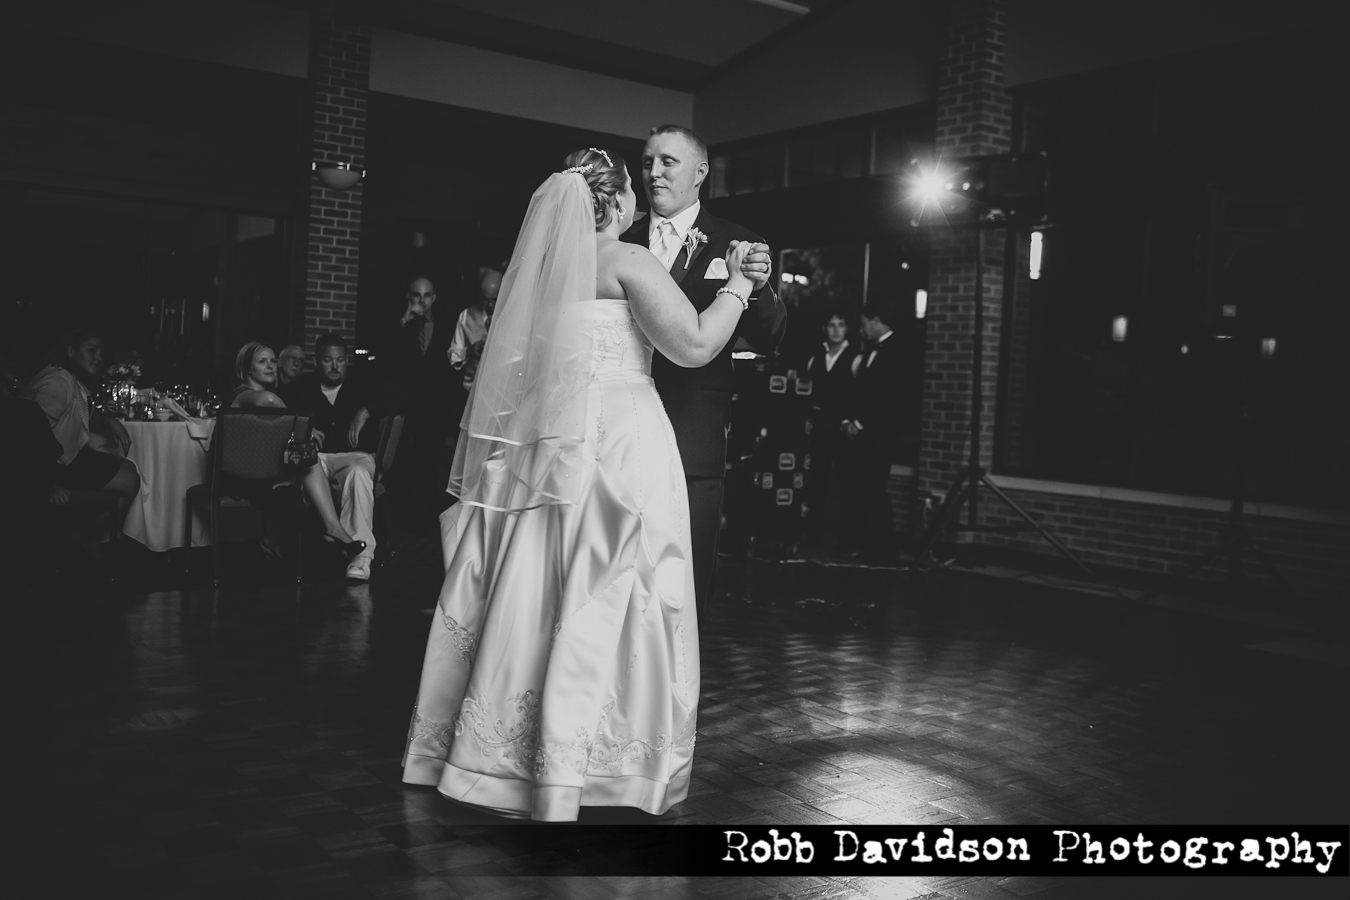 How To Tell If A Website Is Legit >> Travis and Jennifer Traub Had an Amazing Cantigny Wedding, and Made some Civil War Friends ...